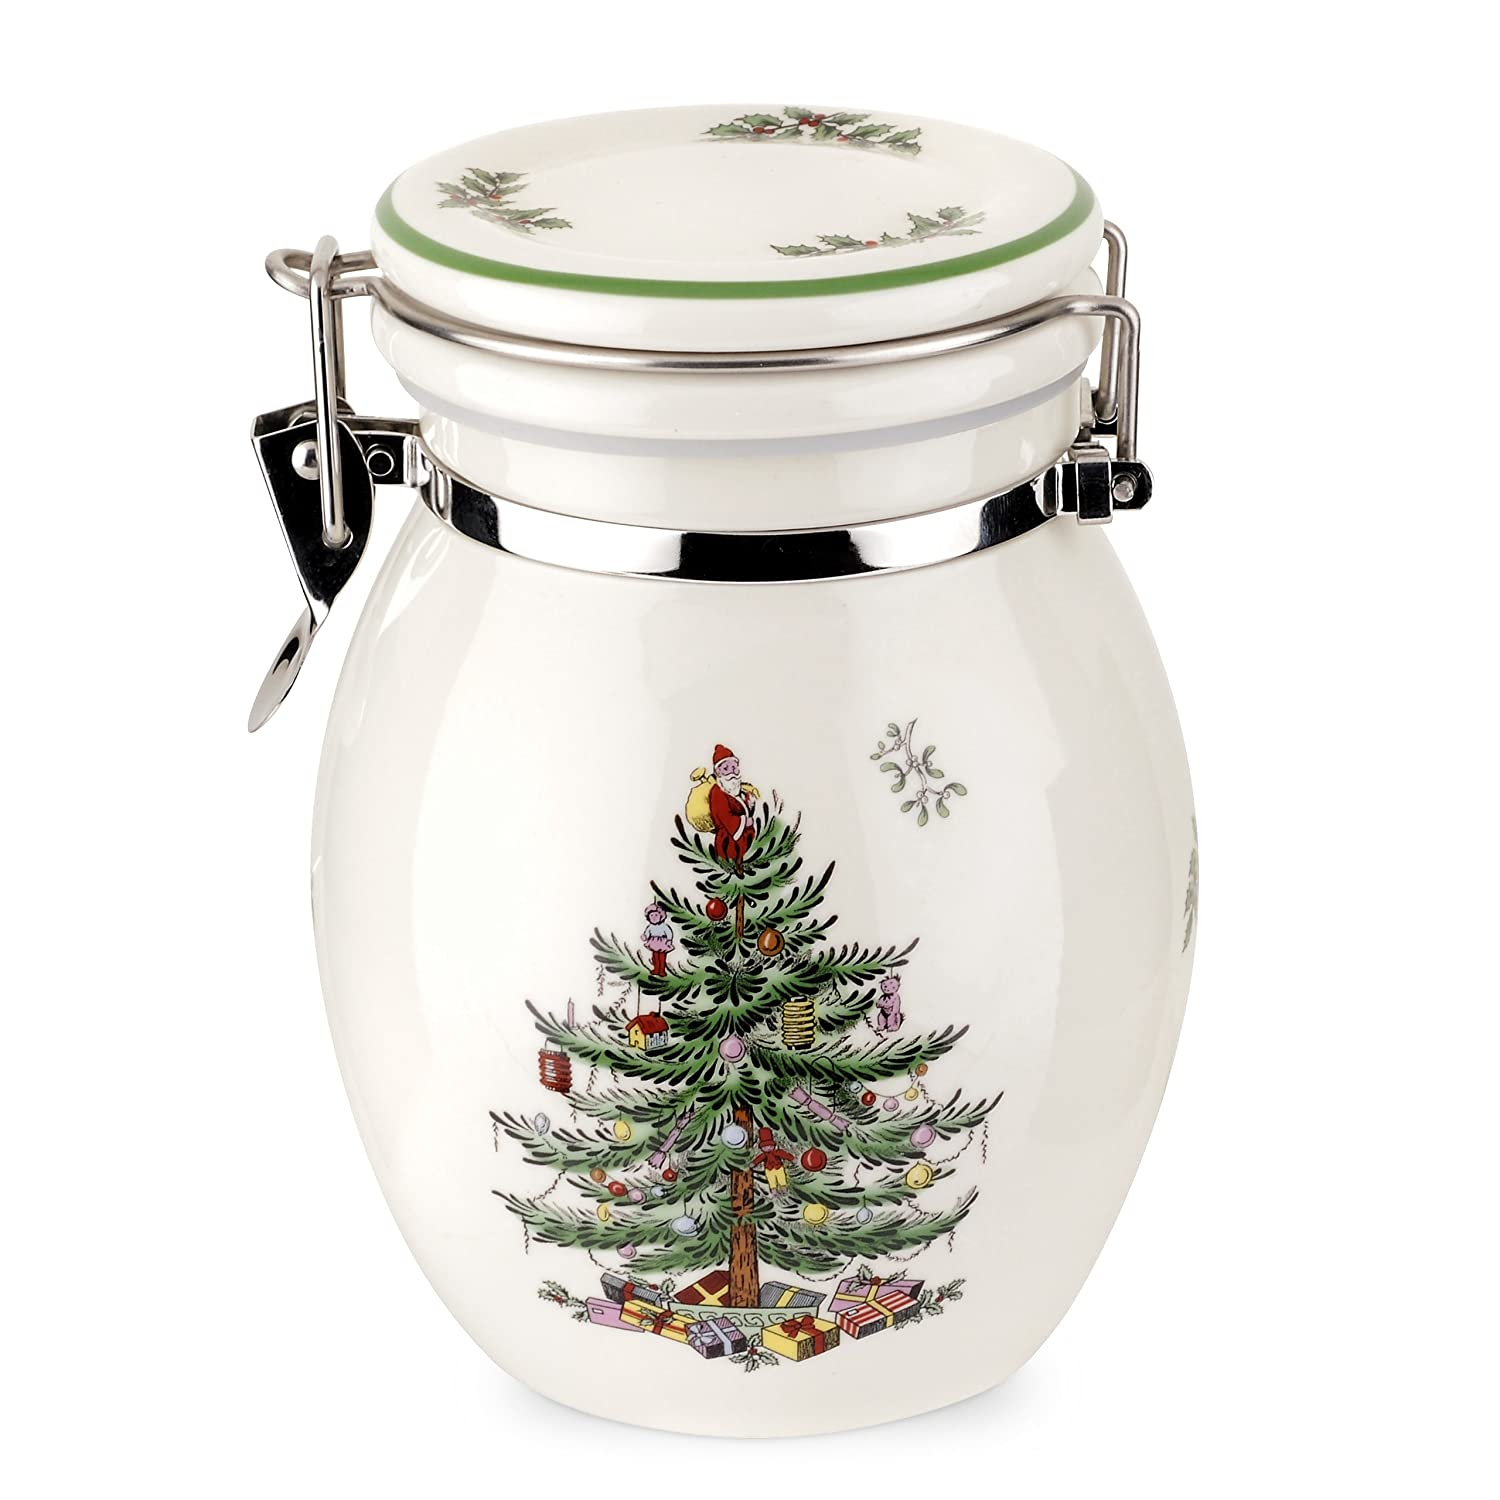 Spode Christmas Tree Preserve Jar